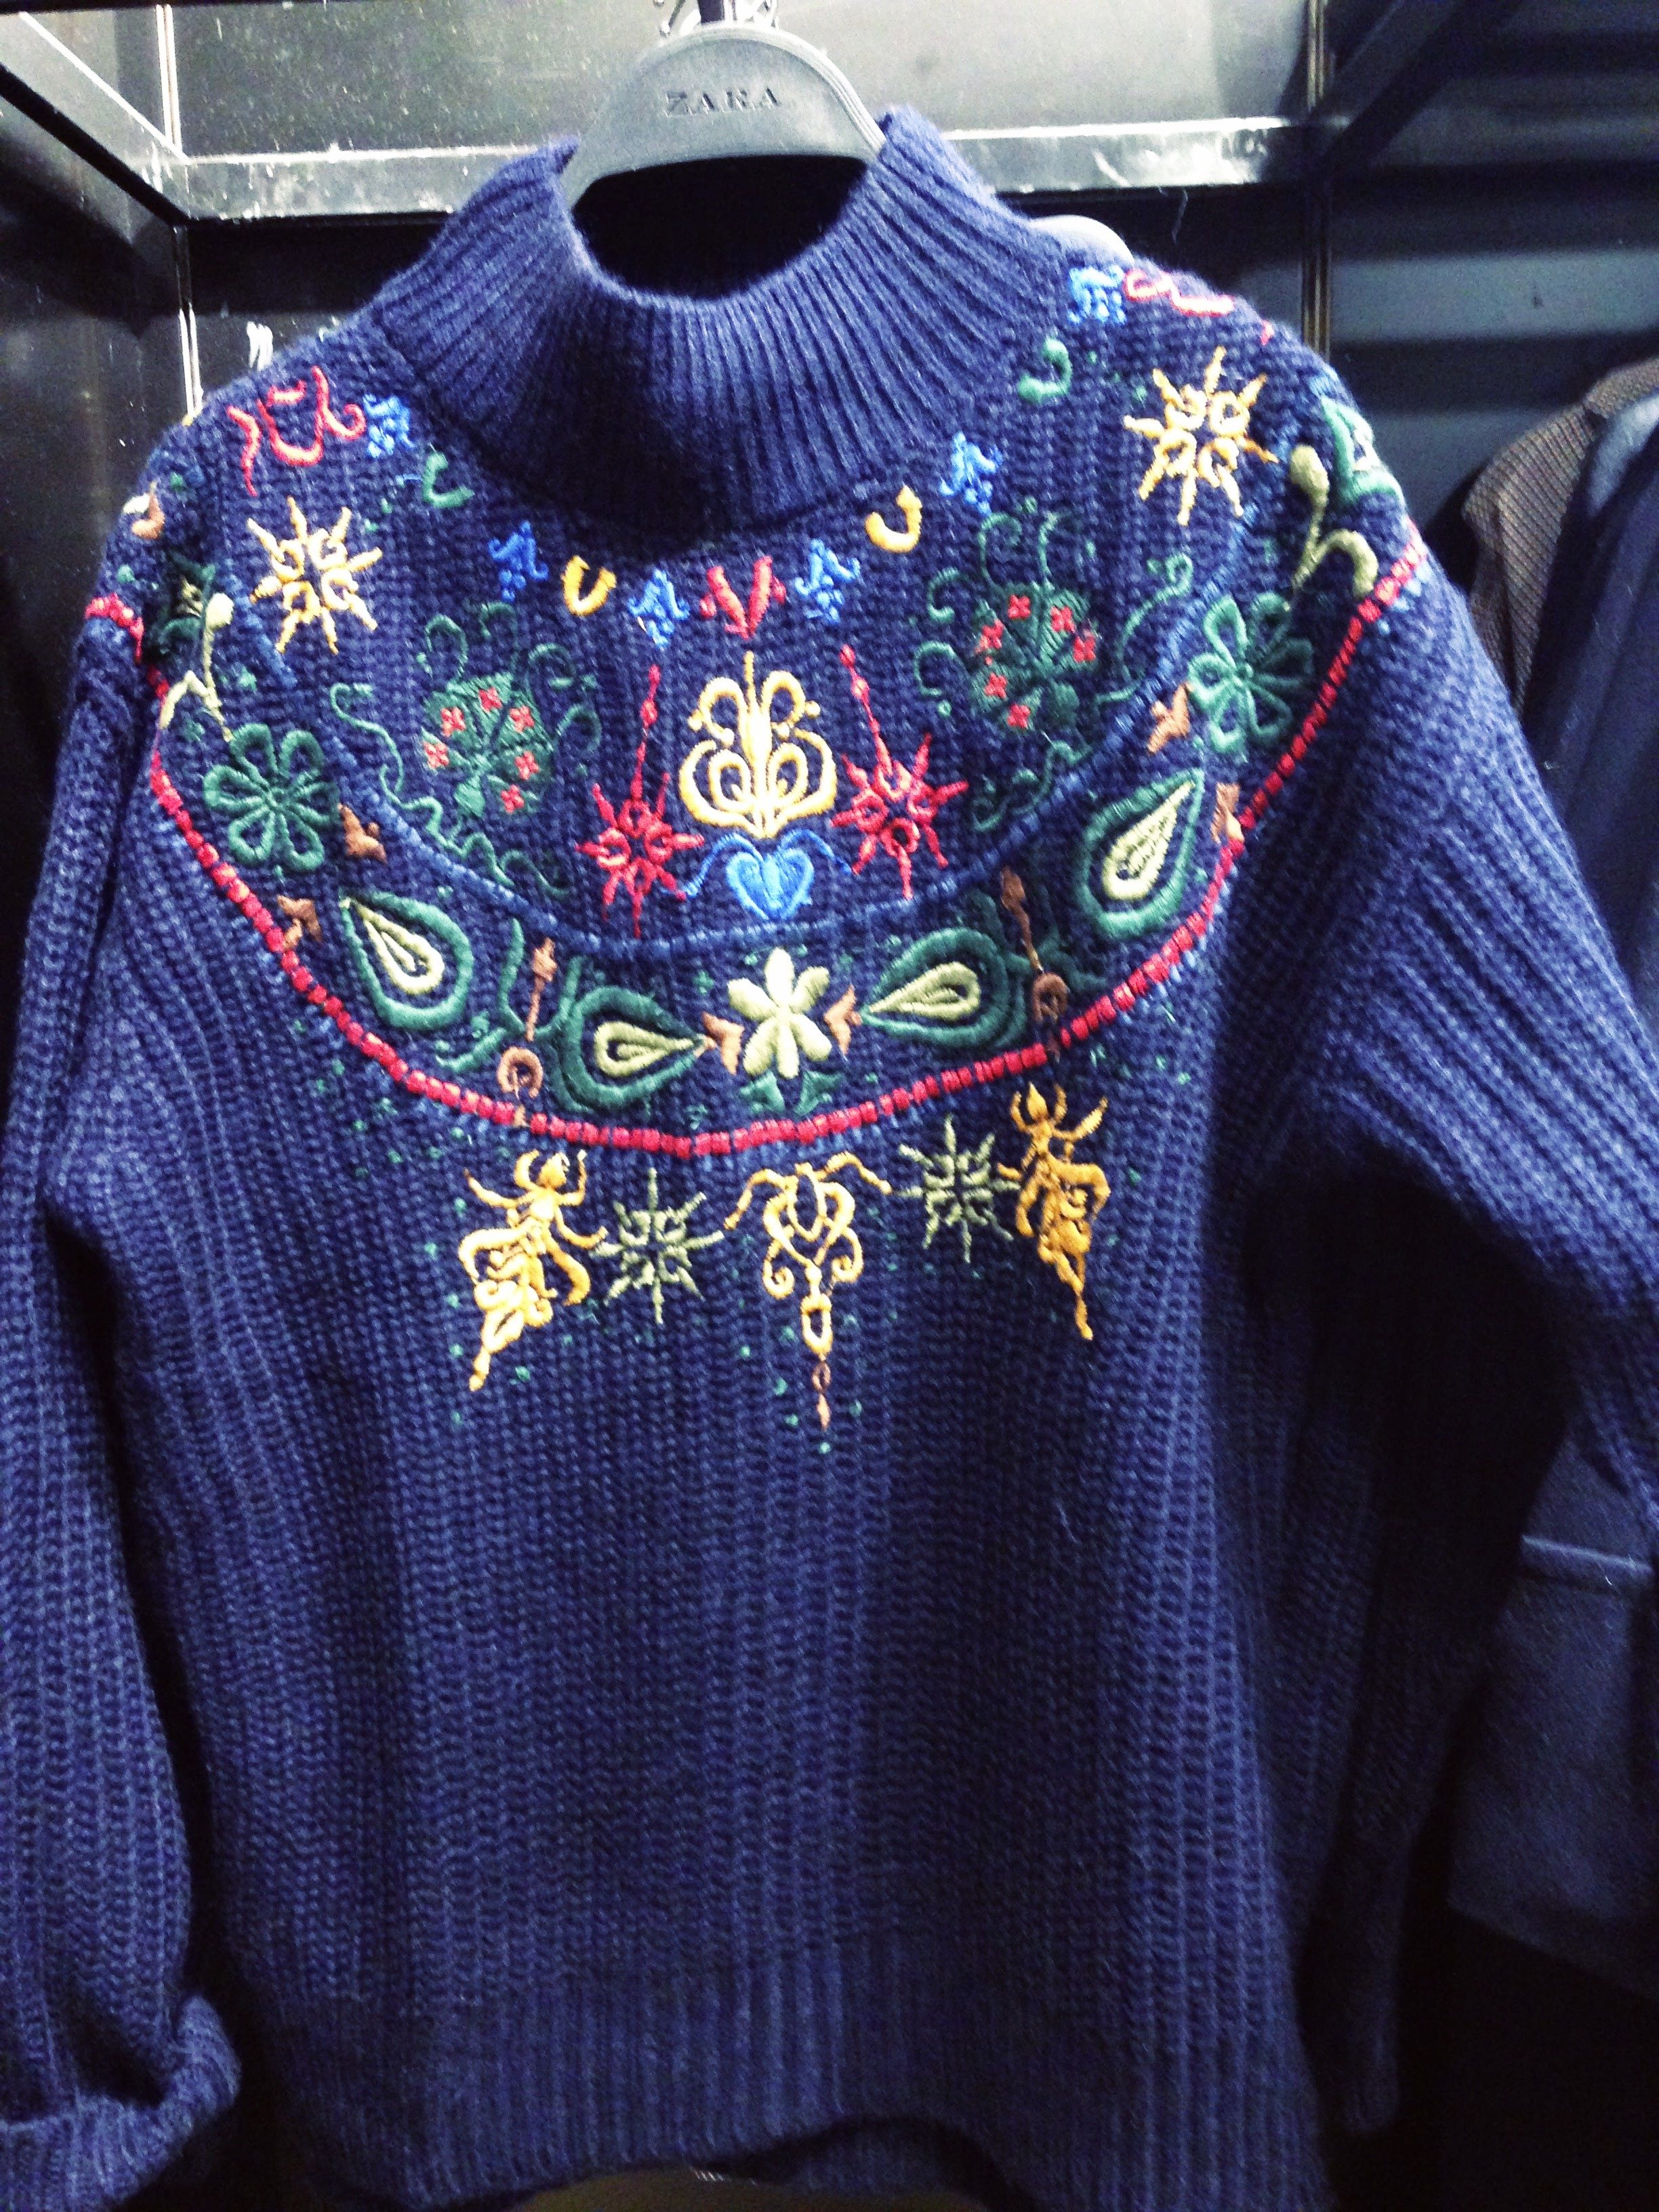 Zara navy knit! Lovely cowl neck big ribbed jumper with embroidered pattern detail. €49.99